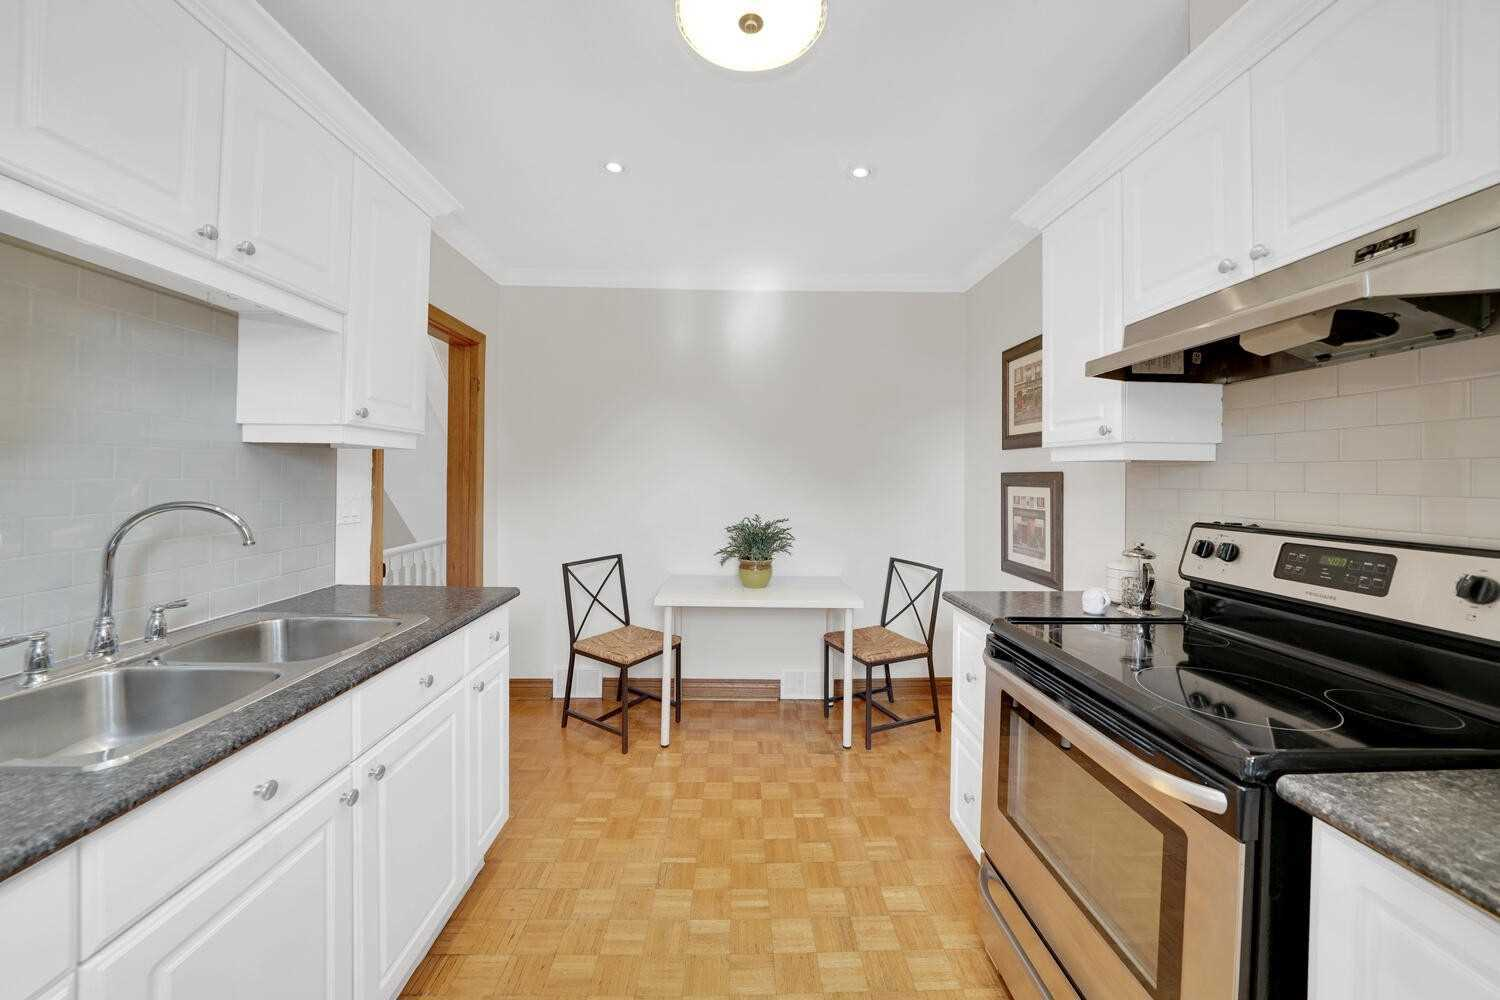 toronto semi sold over asking